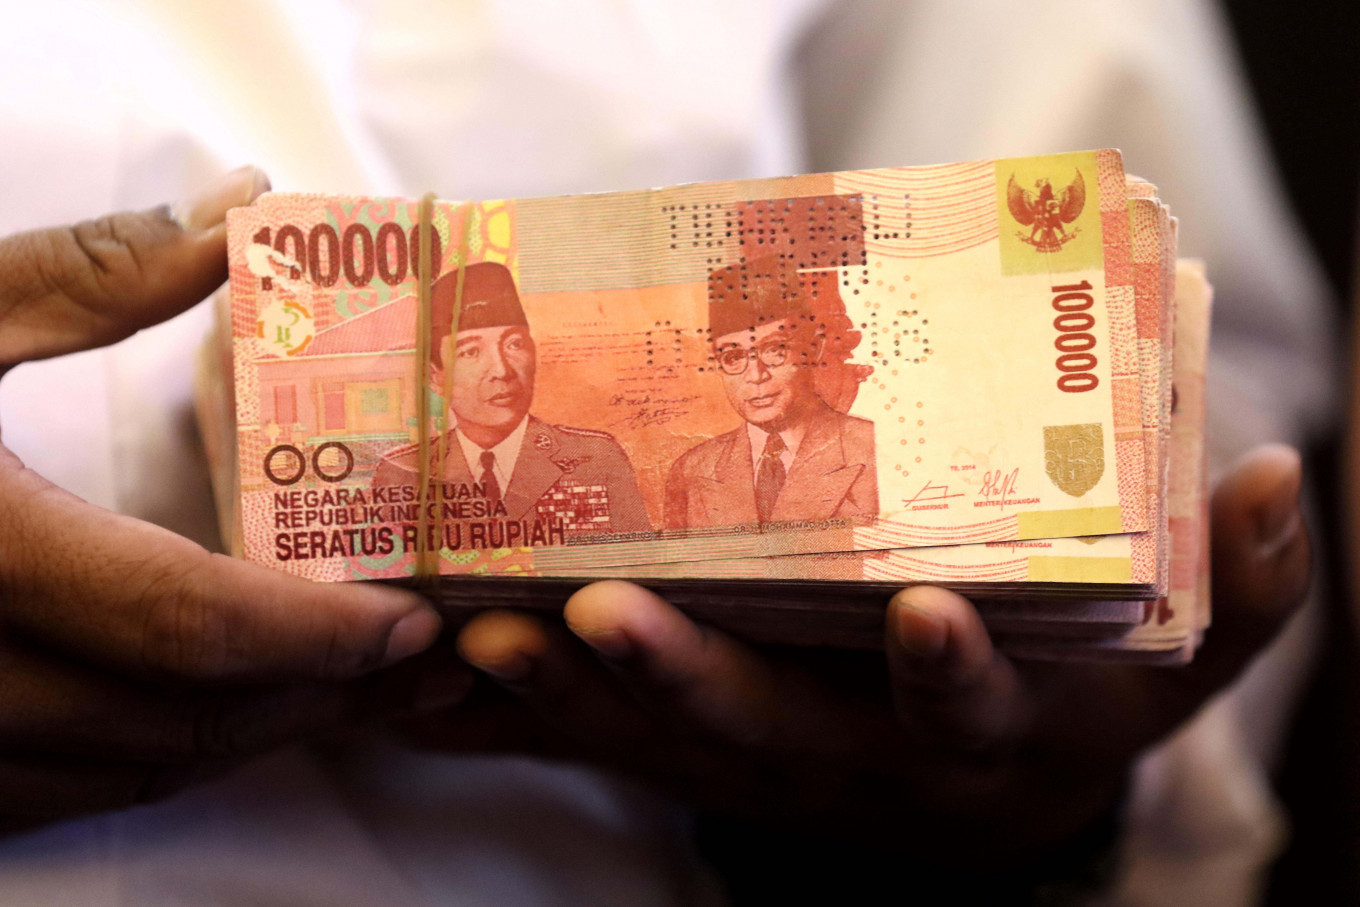 Indonesia will emerge out of pandemic highly indebted. Every rupiah counts